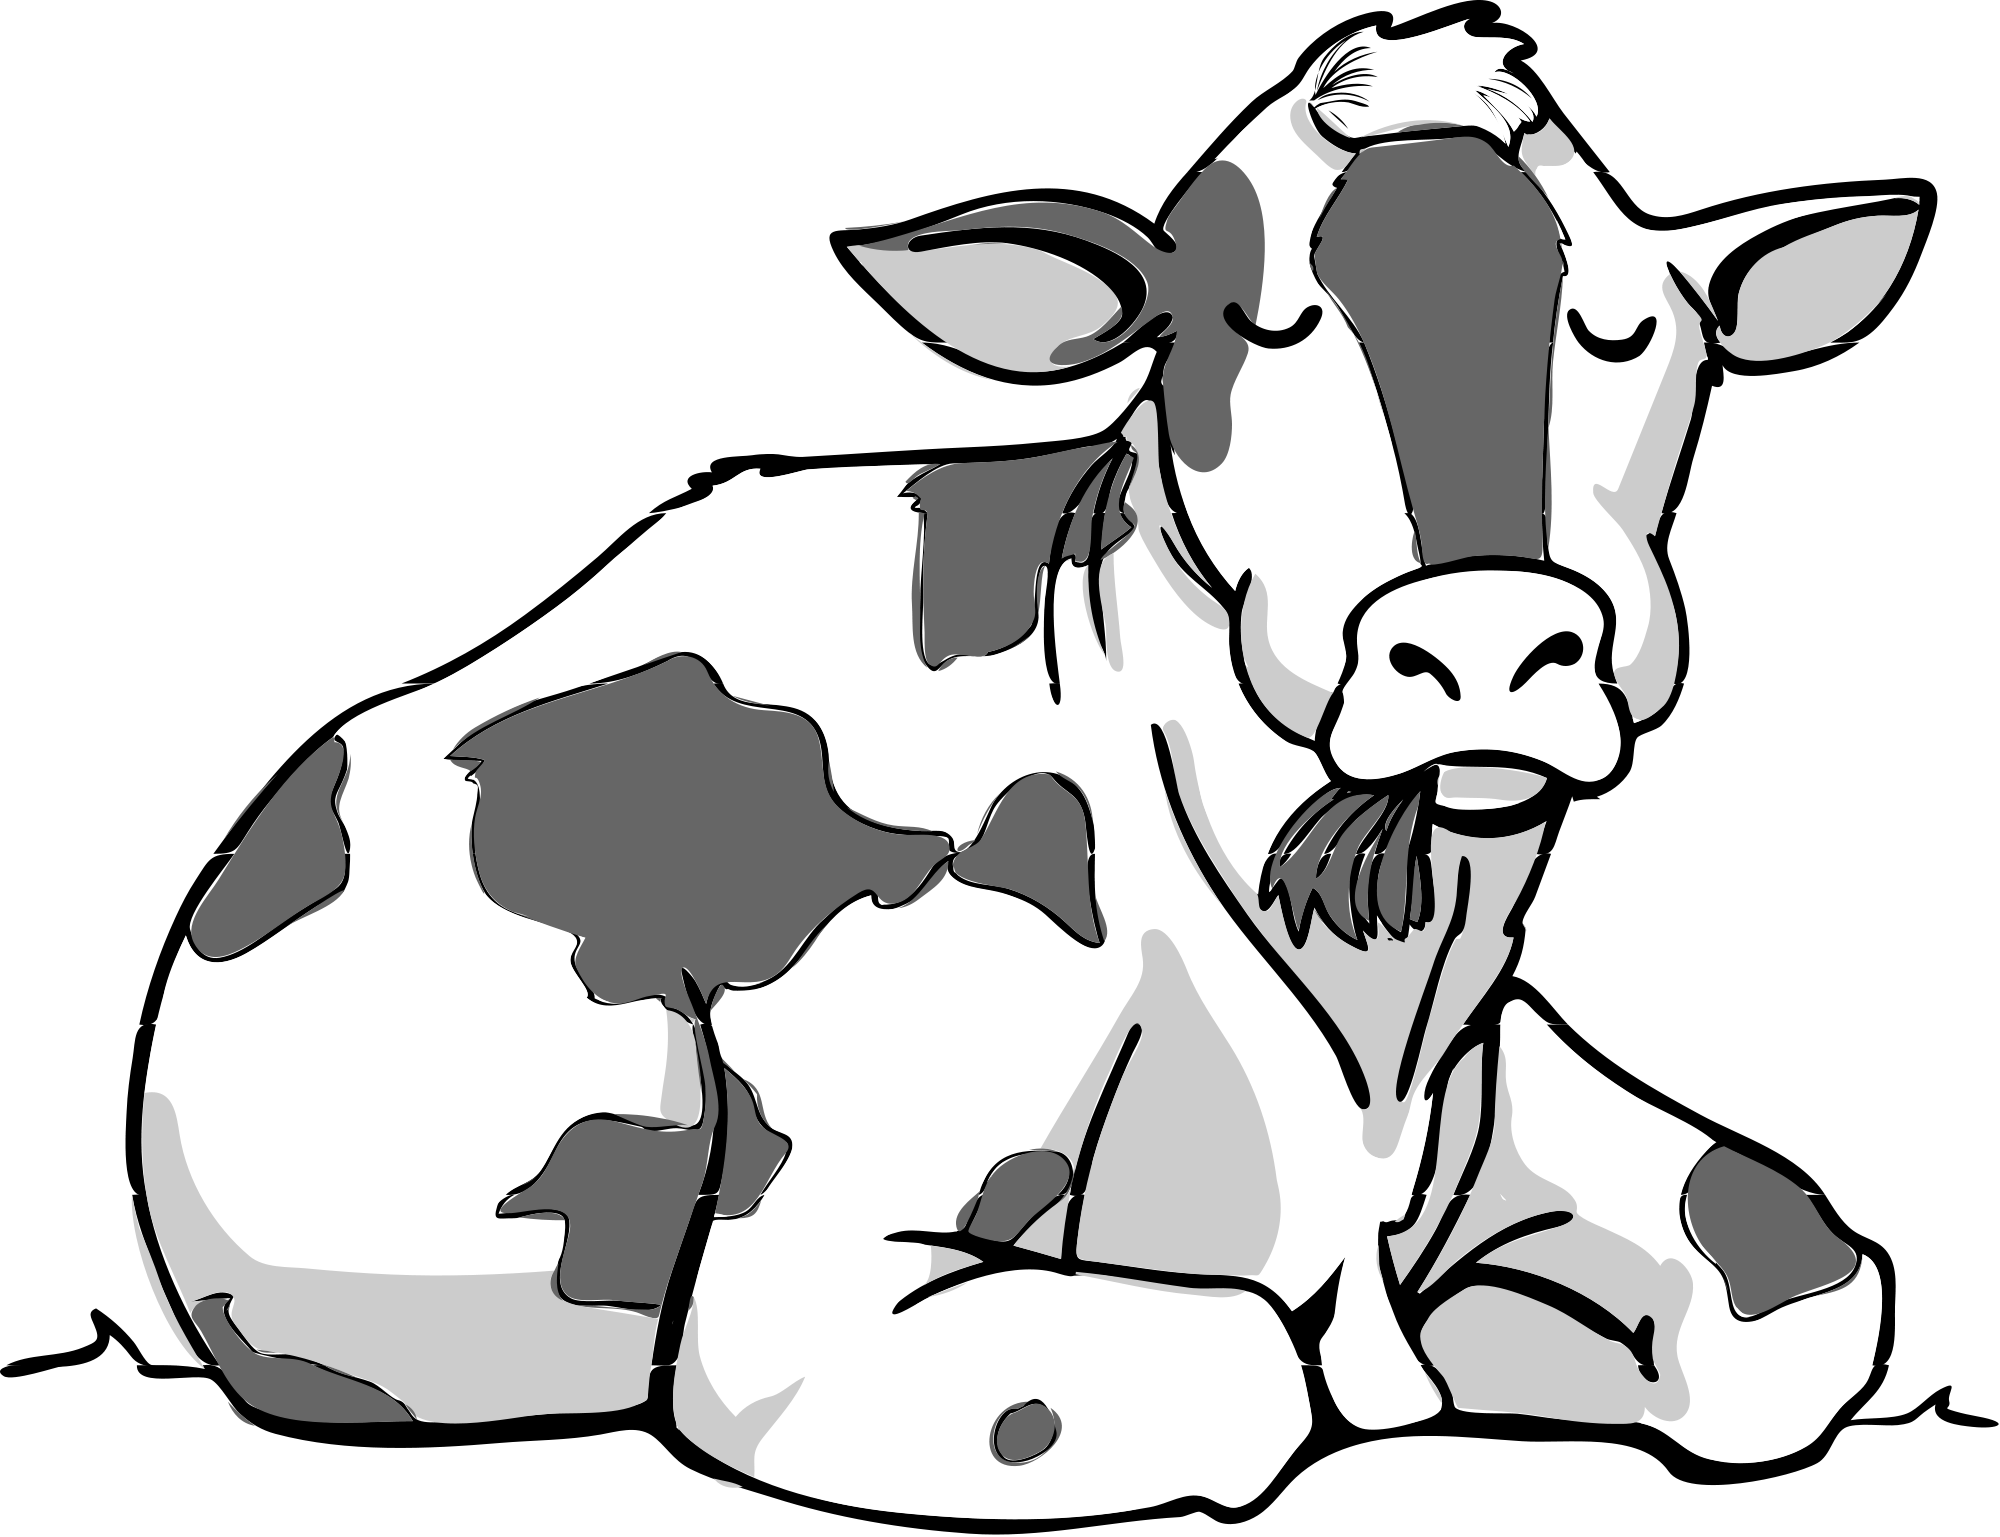 Cow clipart file. Bw svg wikimedia commons